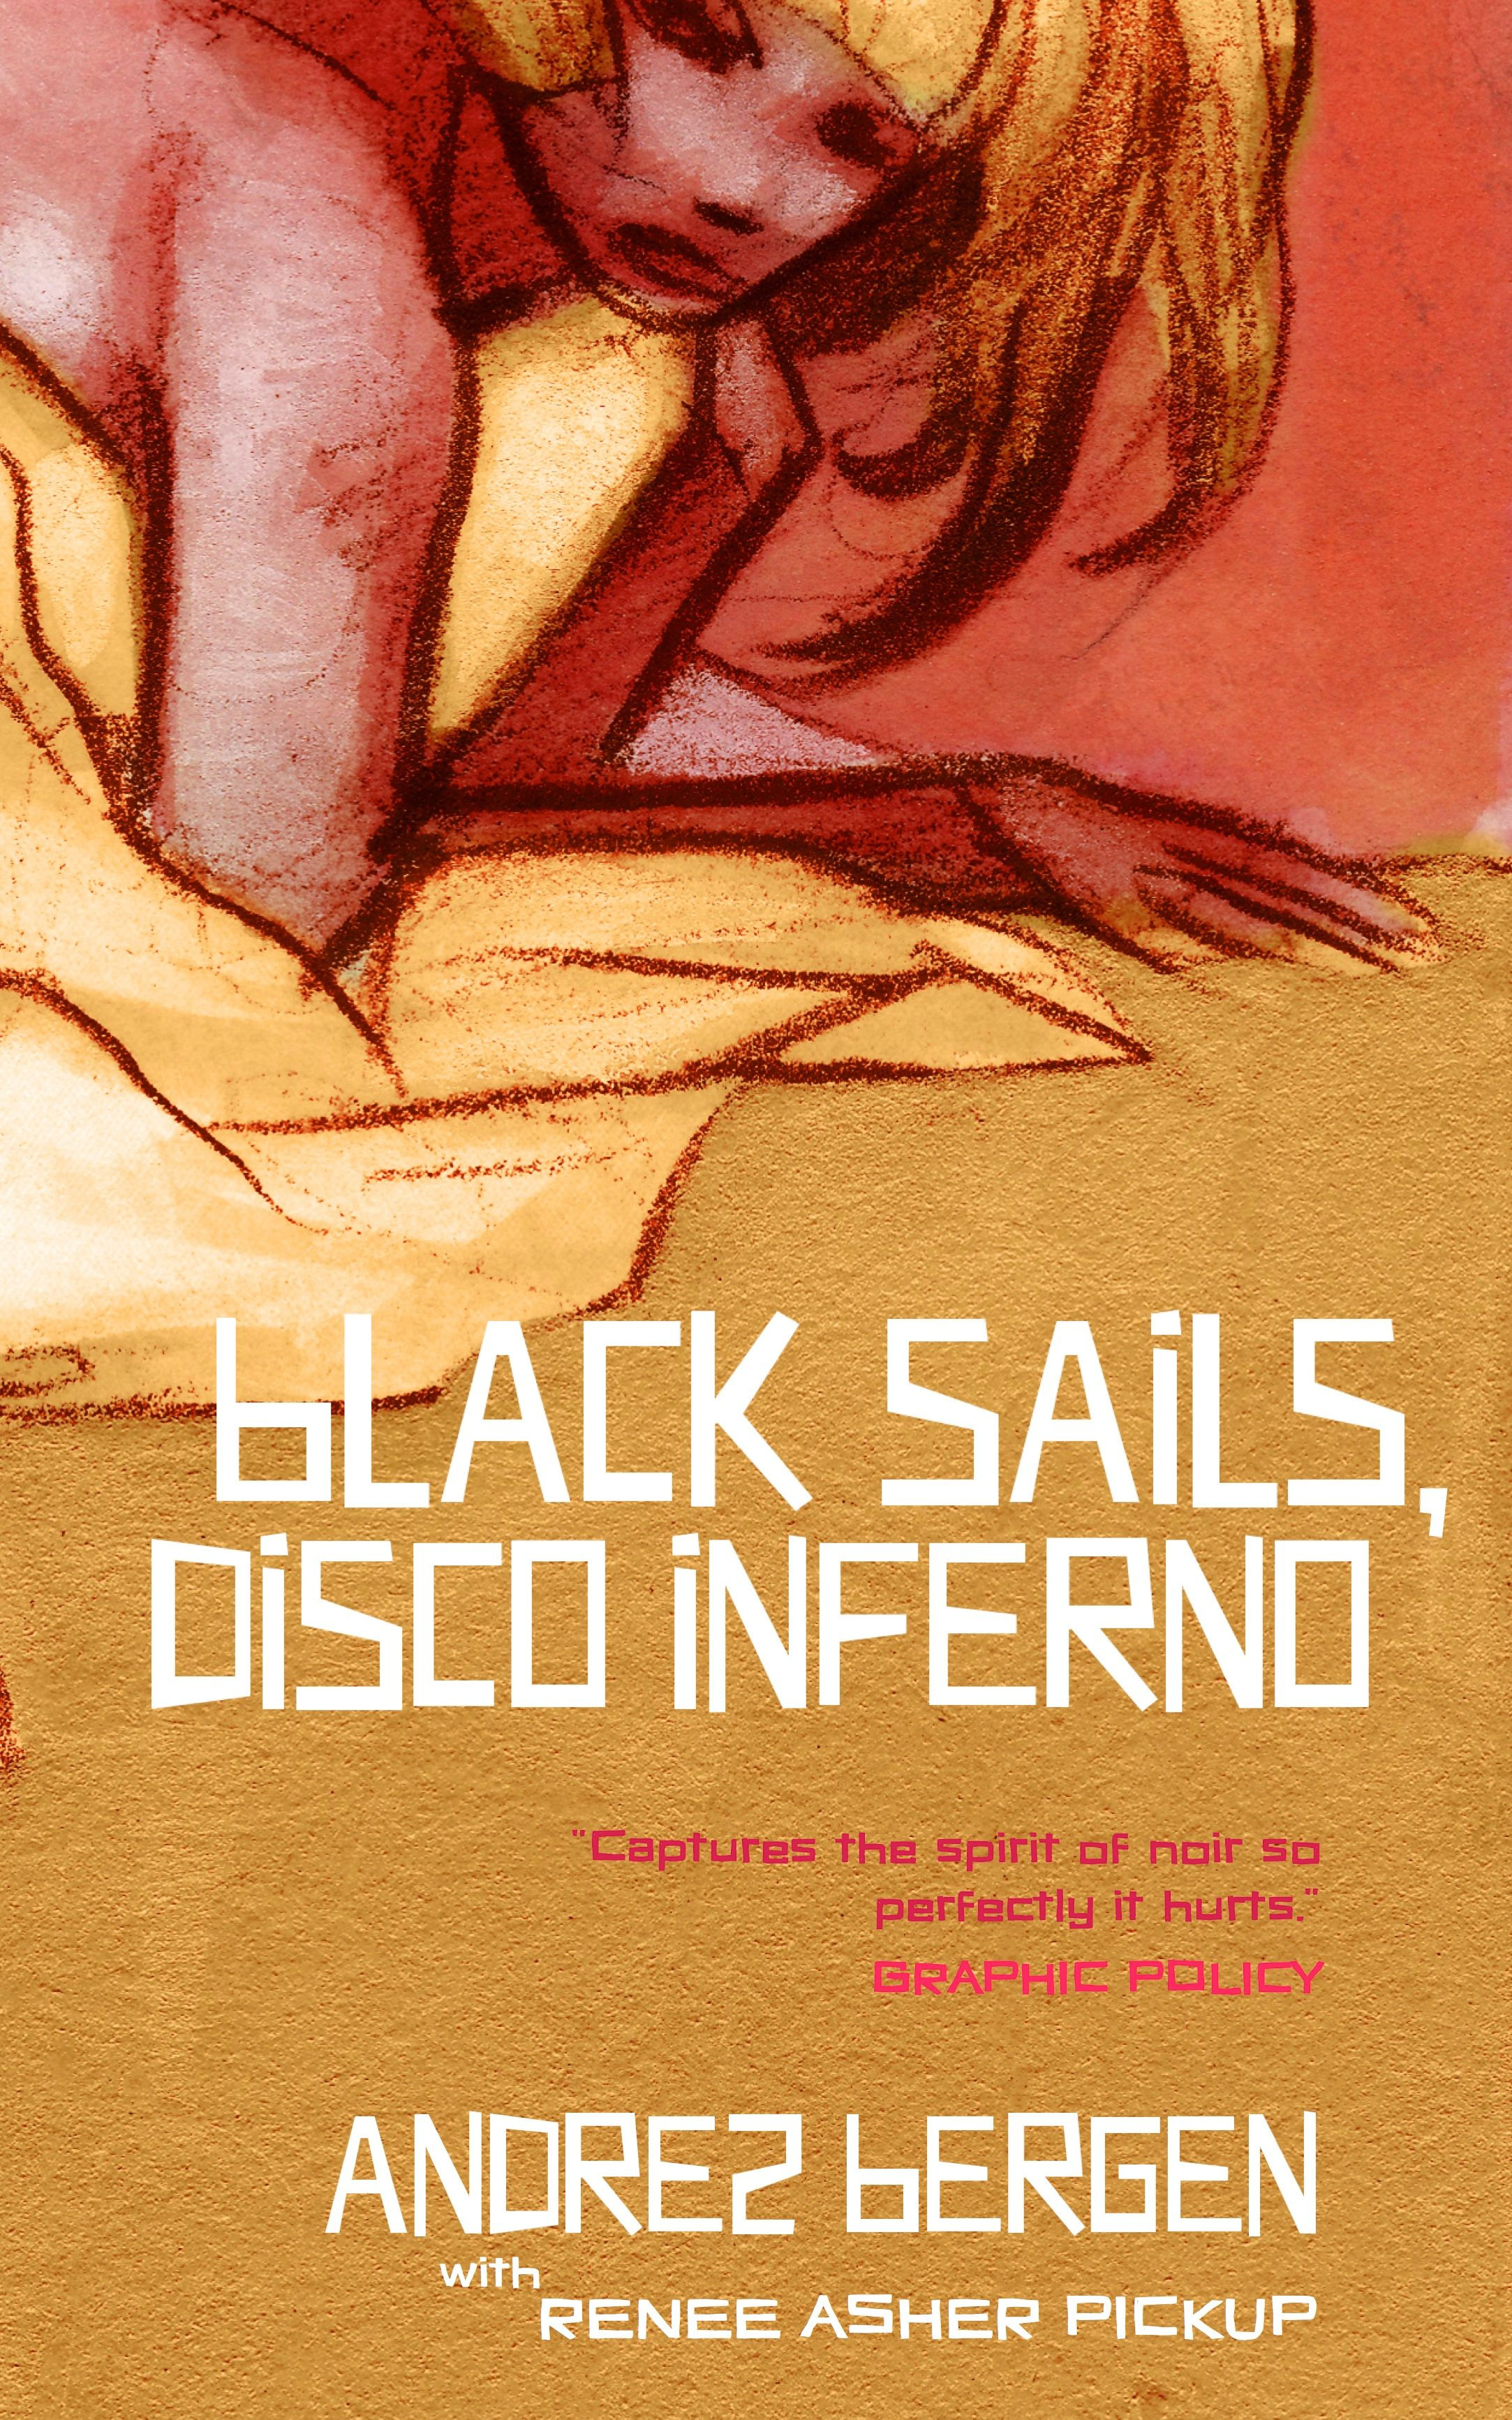 Black Sails, Disco Inferno by Andrez Bergen with Renee Asher Pickup